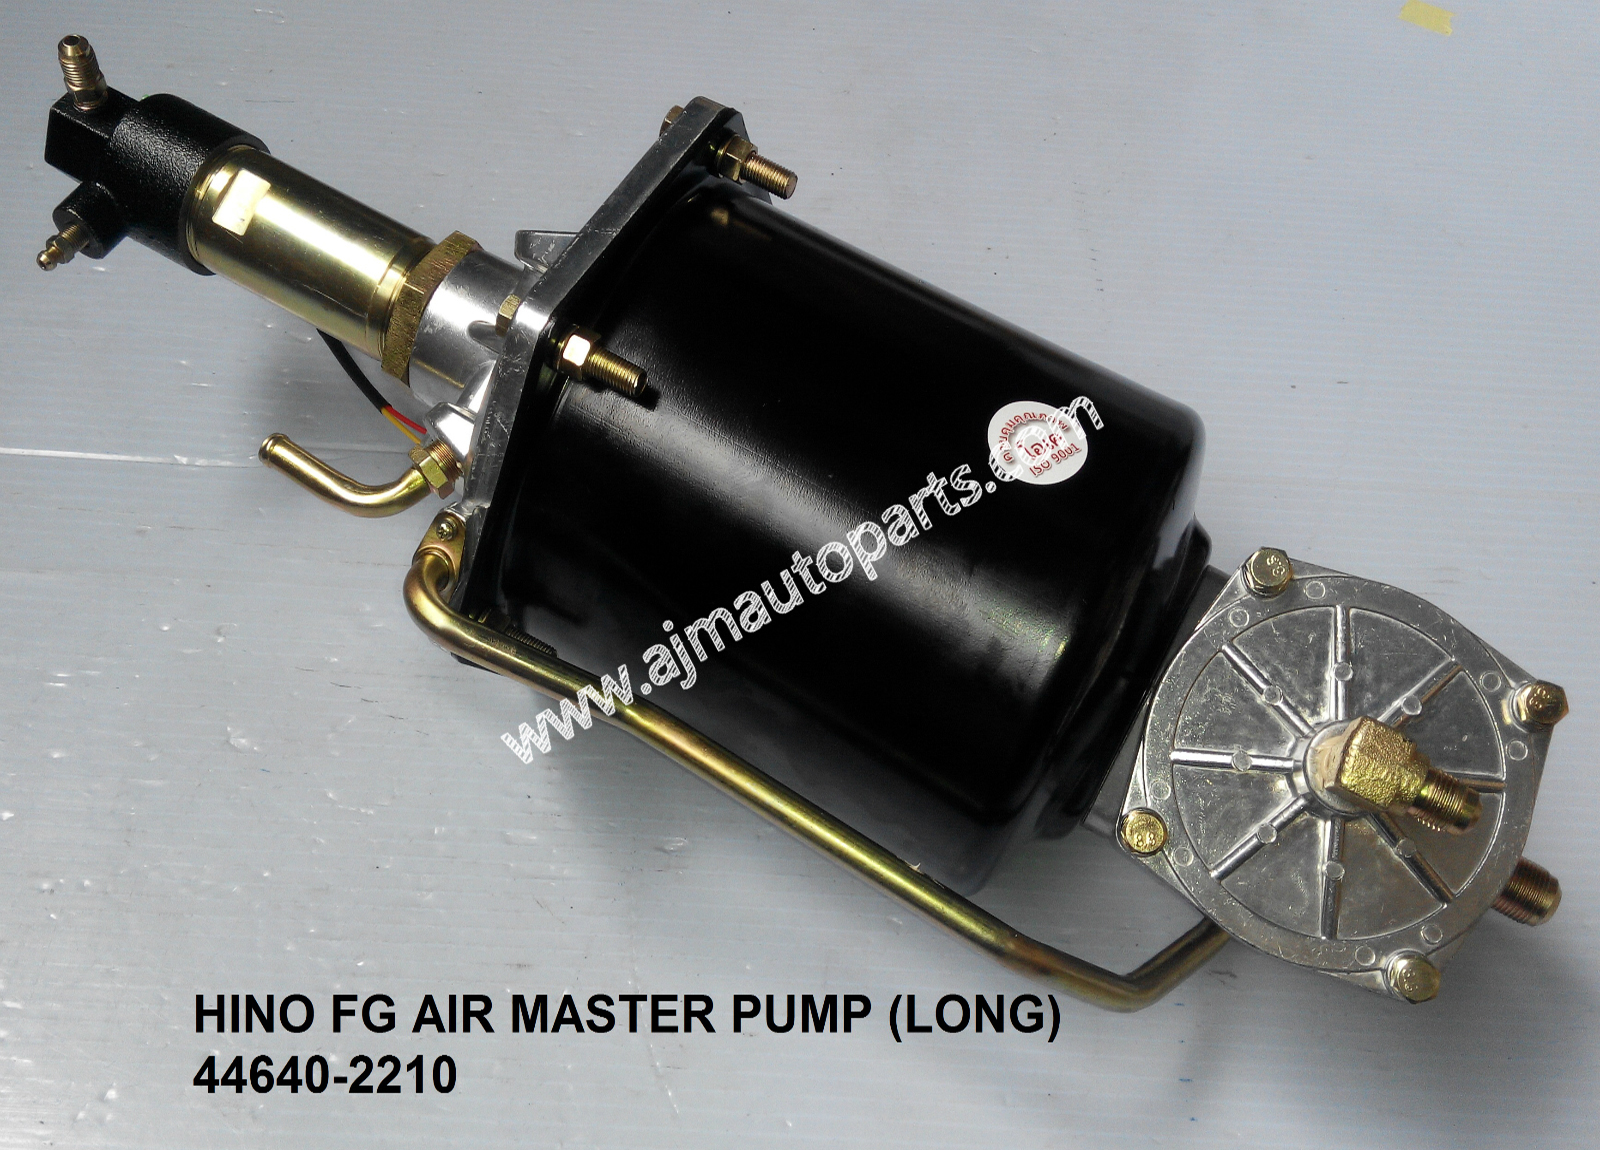 hino_FG_air_master_pump_LONG-44640-2210.jpg